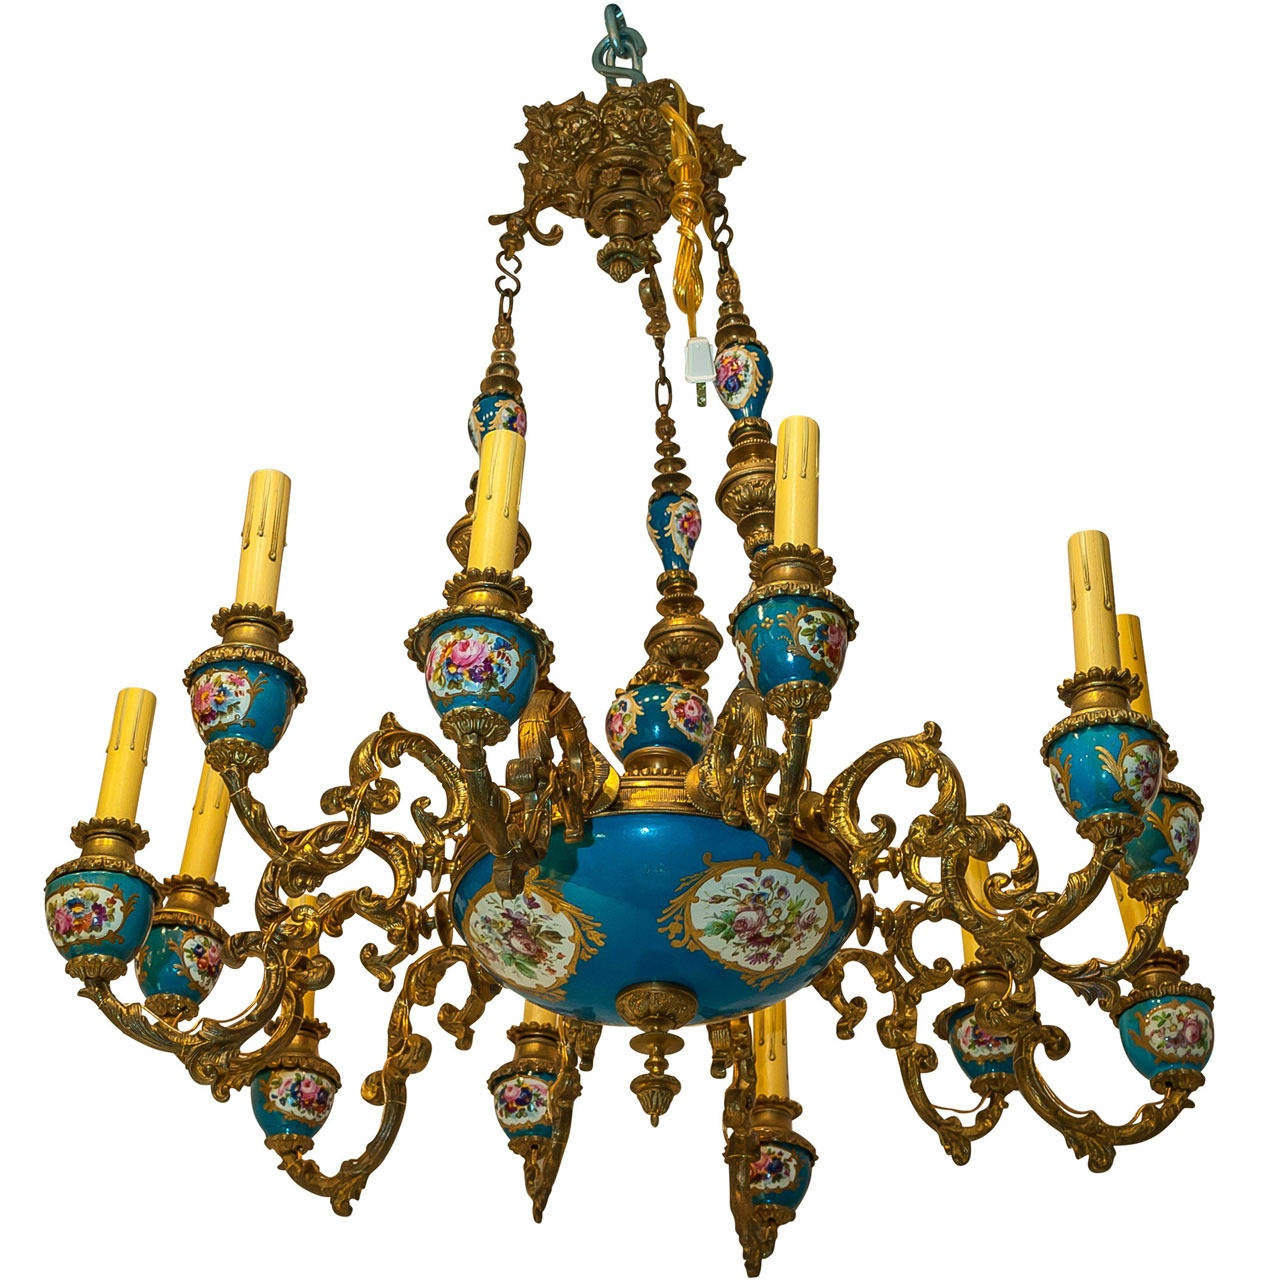 Gilt bronze and sevres style porcelain celeste blue 12 light gilt bronze and sevres style porcelain celeste blue 12 light chandelier for sale arubaitofo Image collections